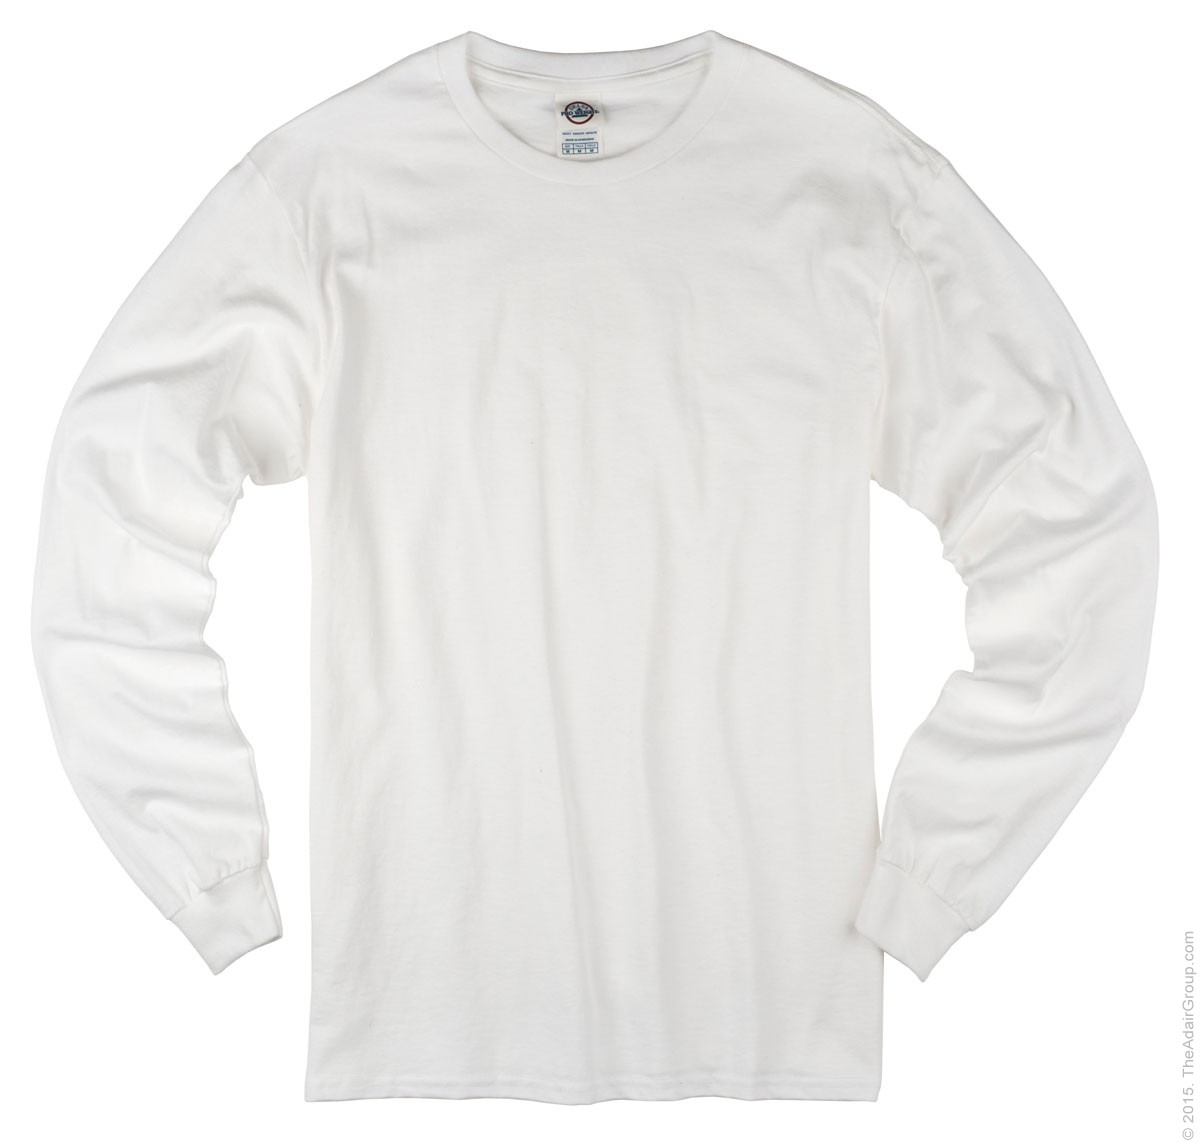 June 2014 artee shirt for Mens long sleeve white t shirt